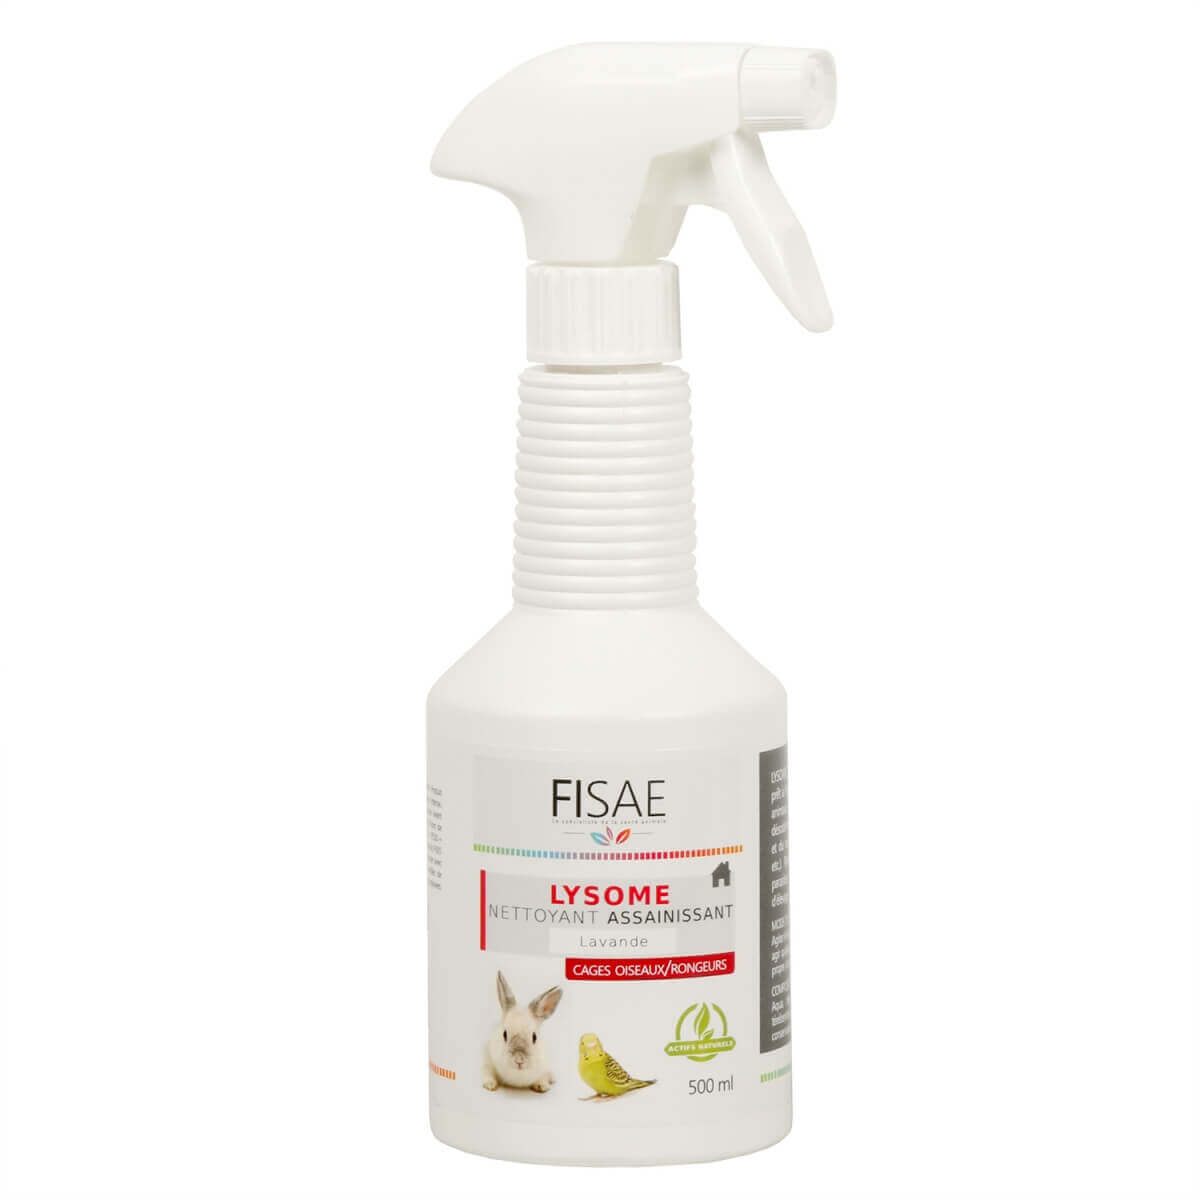 FISAE LYSOME Cleansing Cage Cleaner_0